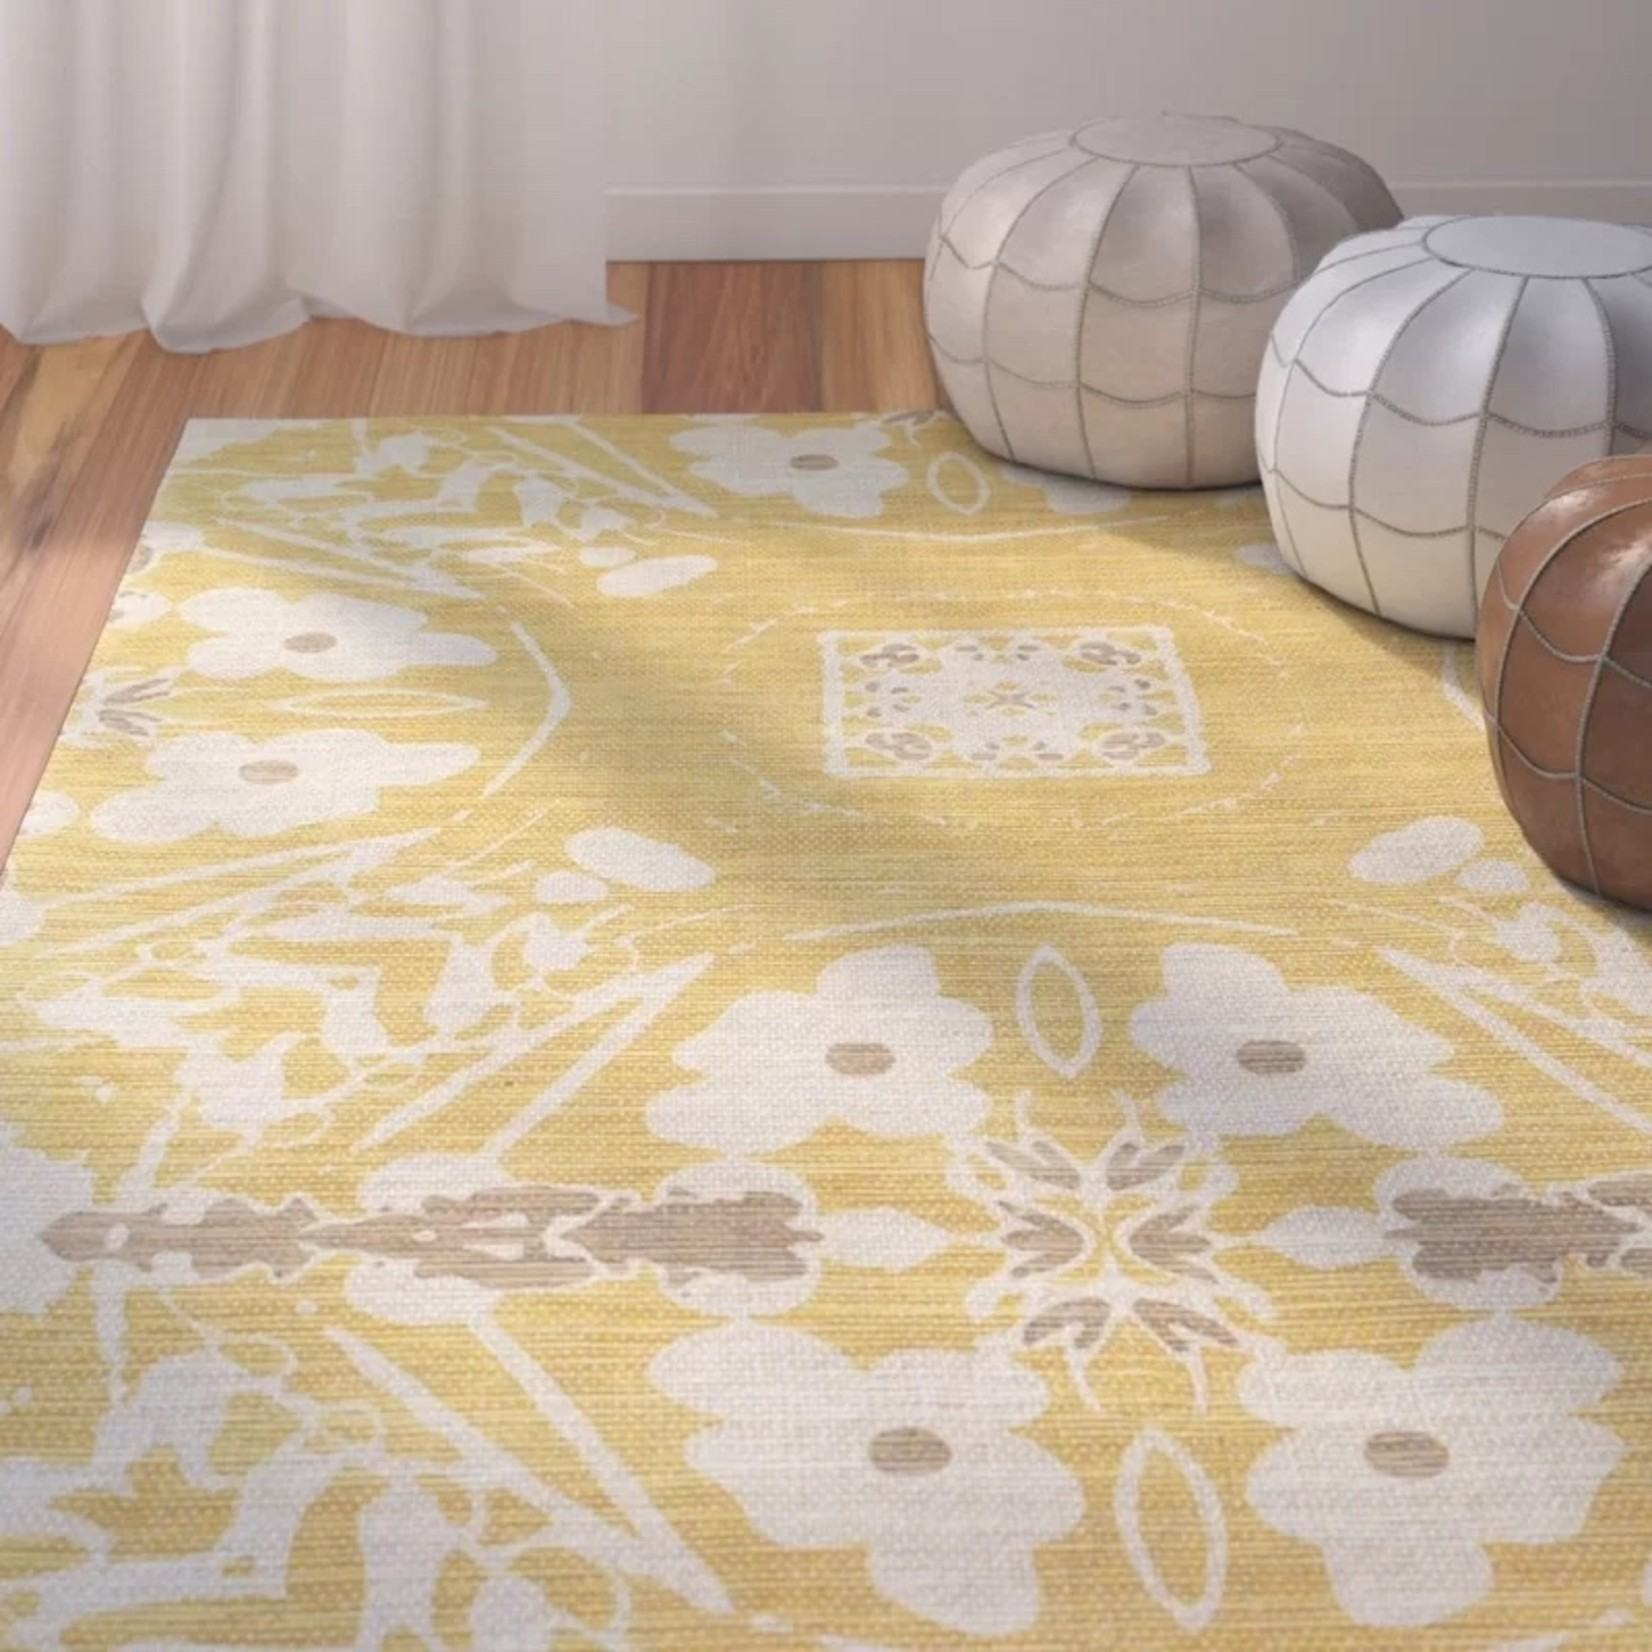 *5' x 8' - Tongouin Floral Handmade Tufted Cotton Yellow Area Rug